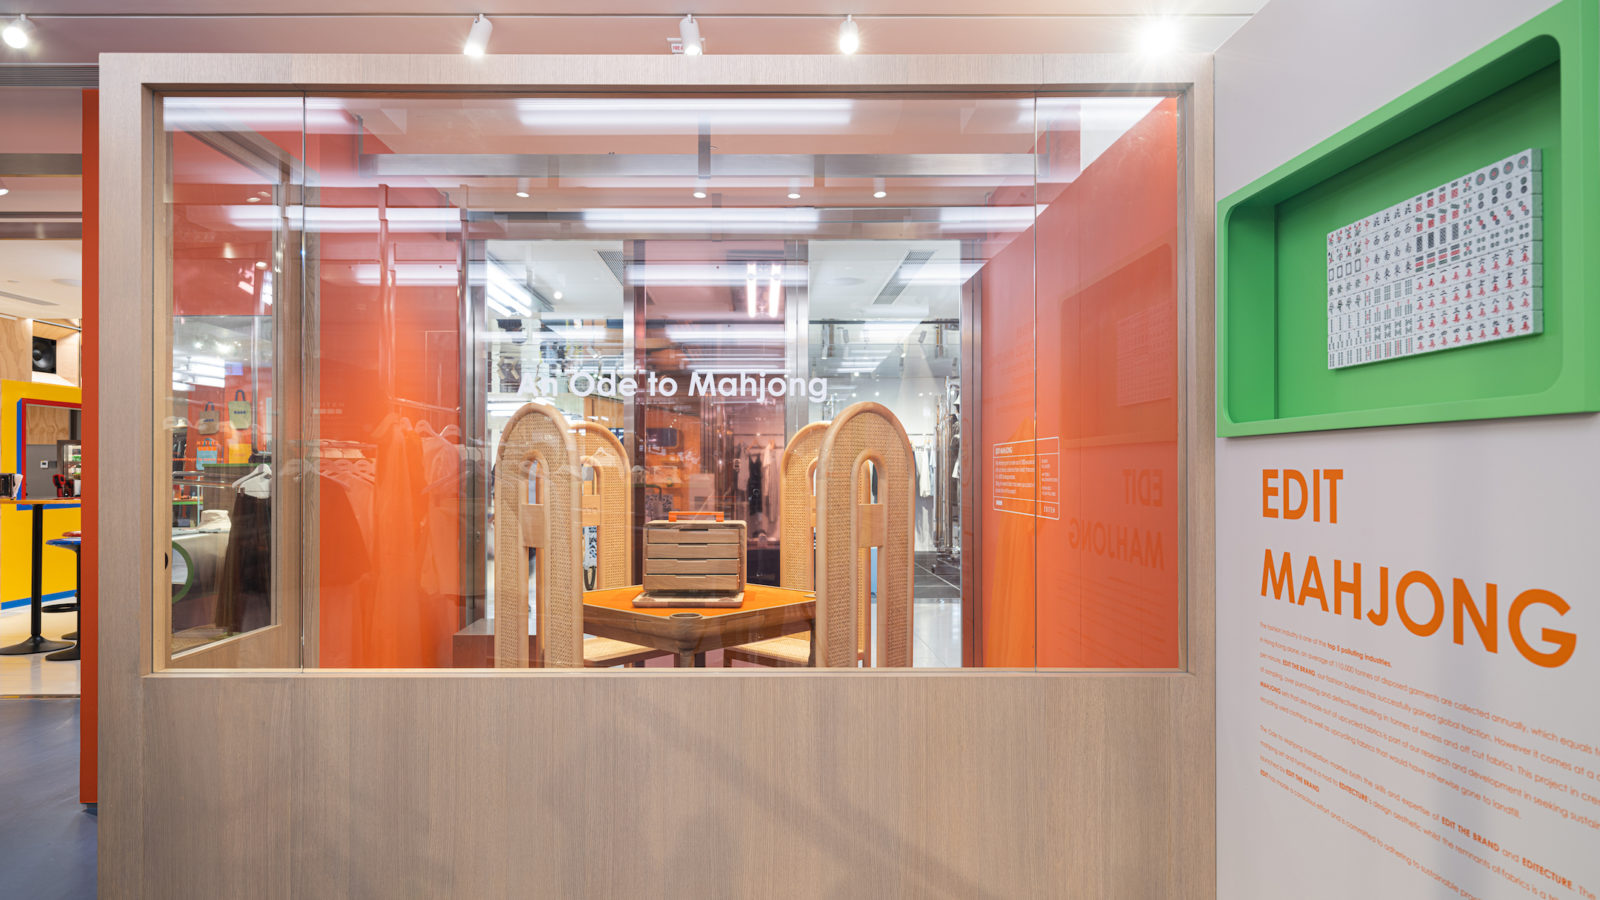 Ode to Mahjong: An Installation and Project By Edit The Brand & Editecture